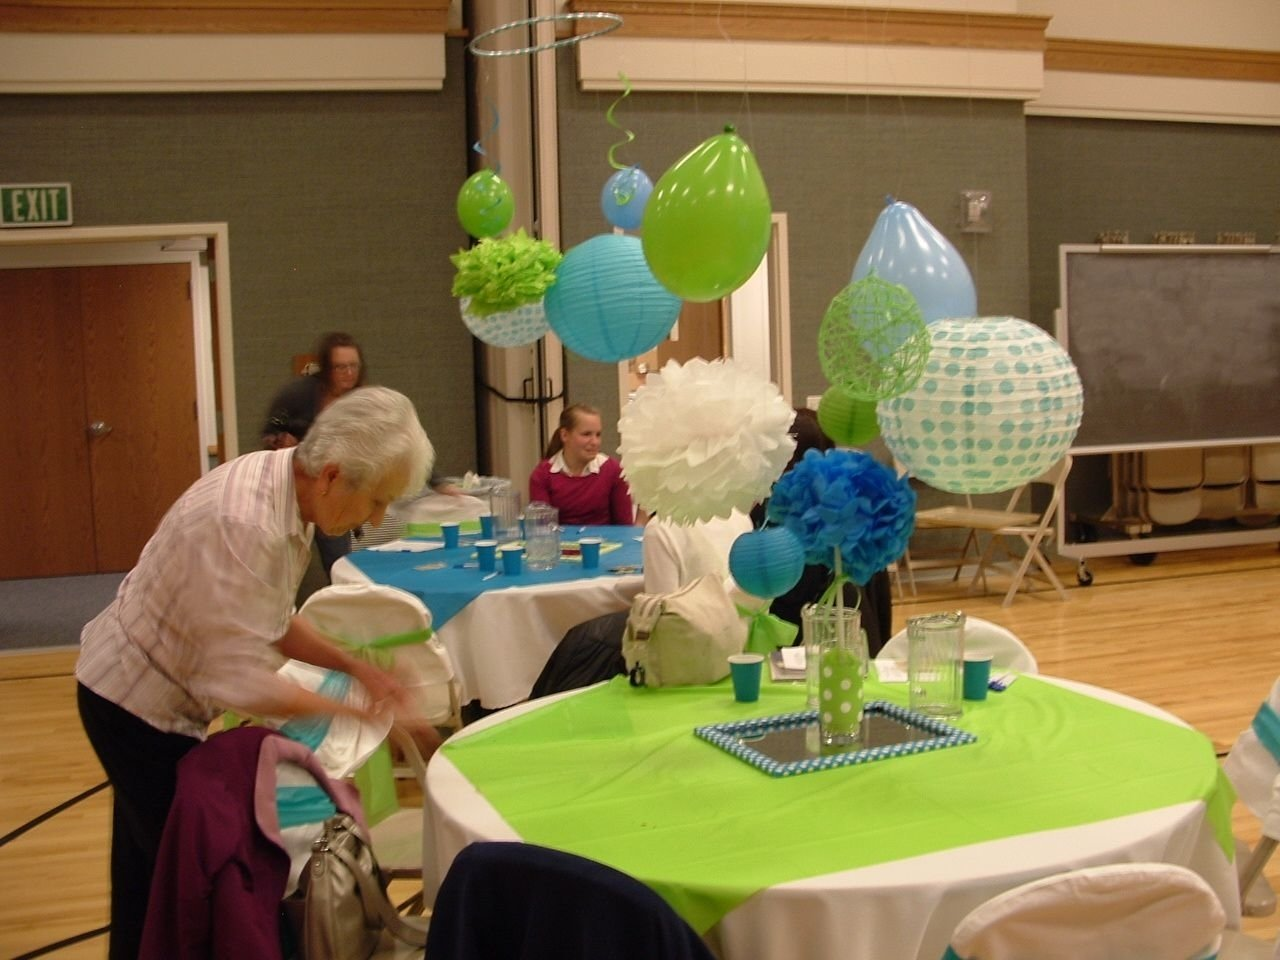 10 Cute Relief Society Birthday Party Ideas merrys 2nd home my wards relief society birthday party party 2021